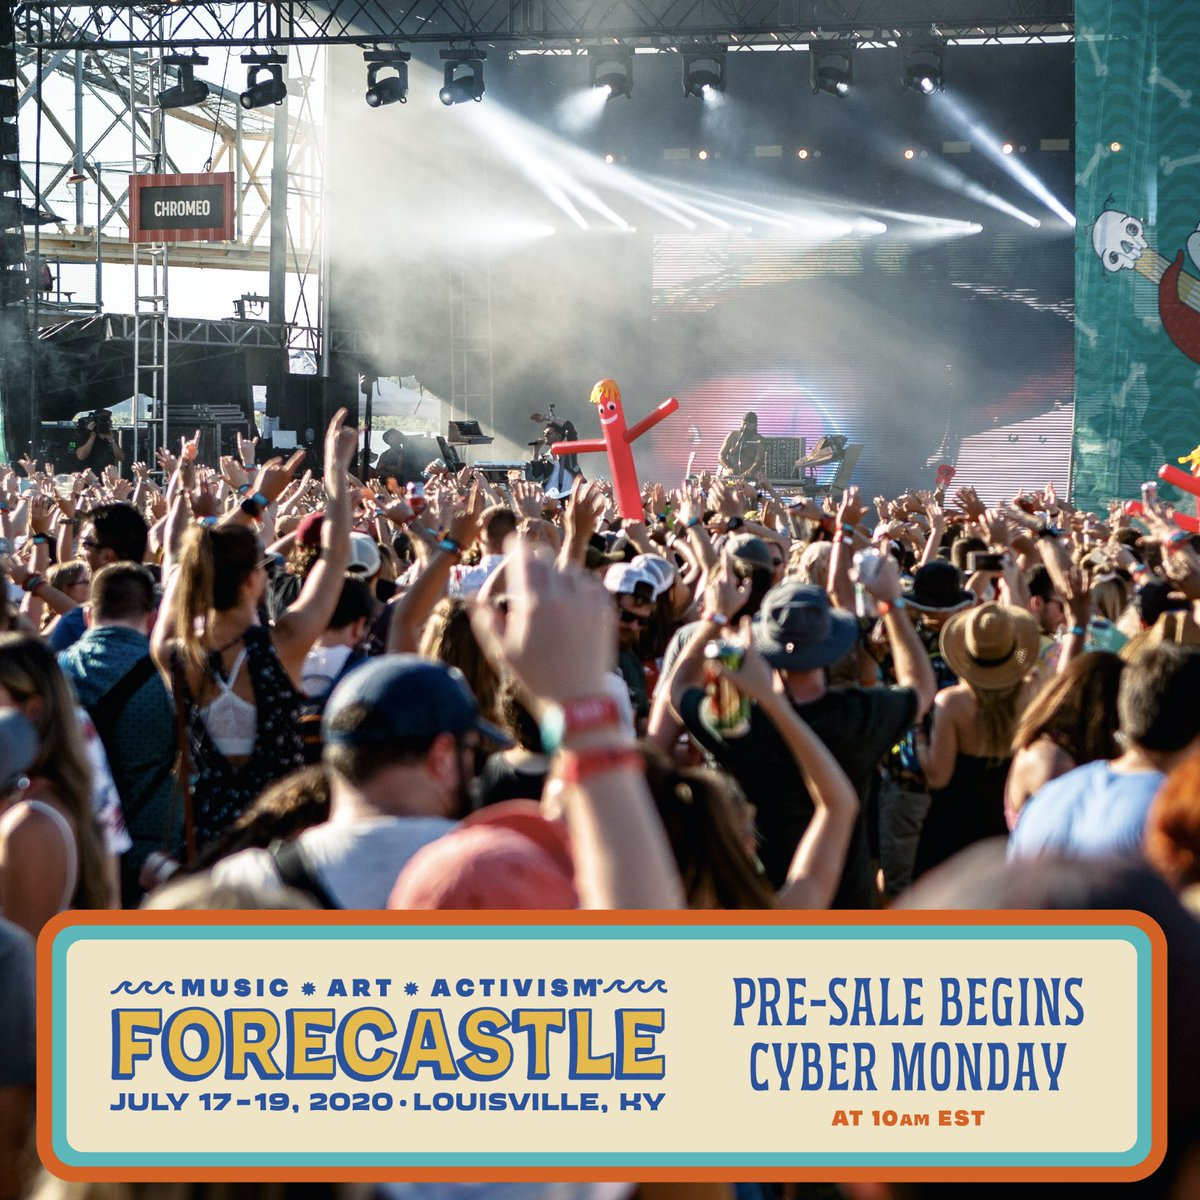 Forecastle Festival 2020.Forecastle Festival Forecastle Twitter Profile And